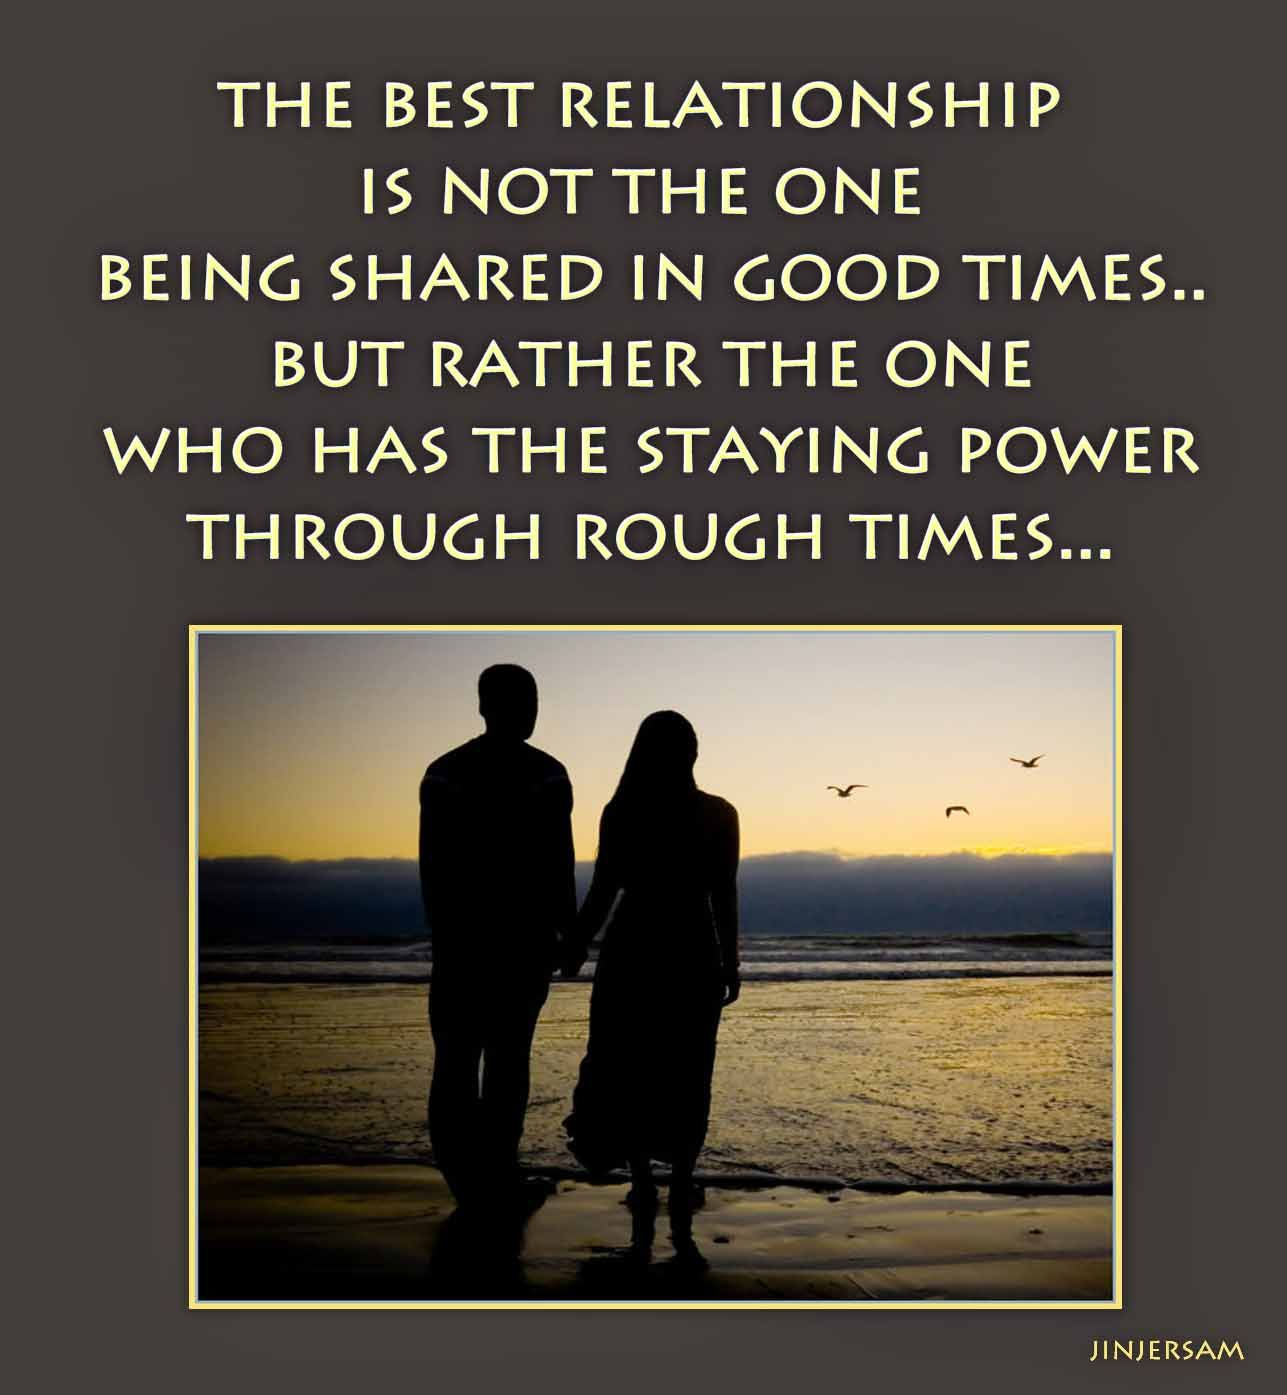 Best Relationship Quotes Alluring The Best Relationship  Quotes About Love  Pinterest